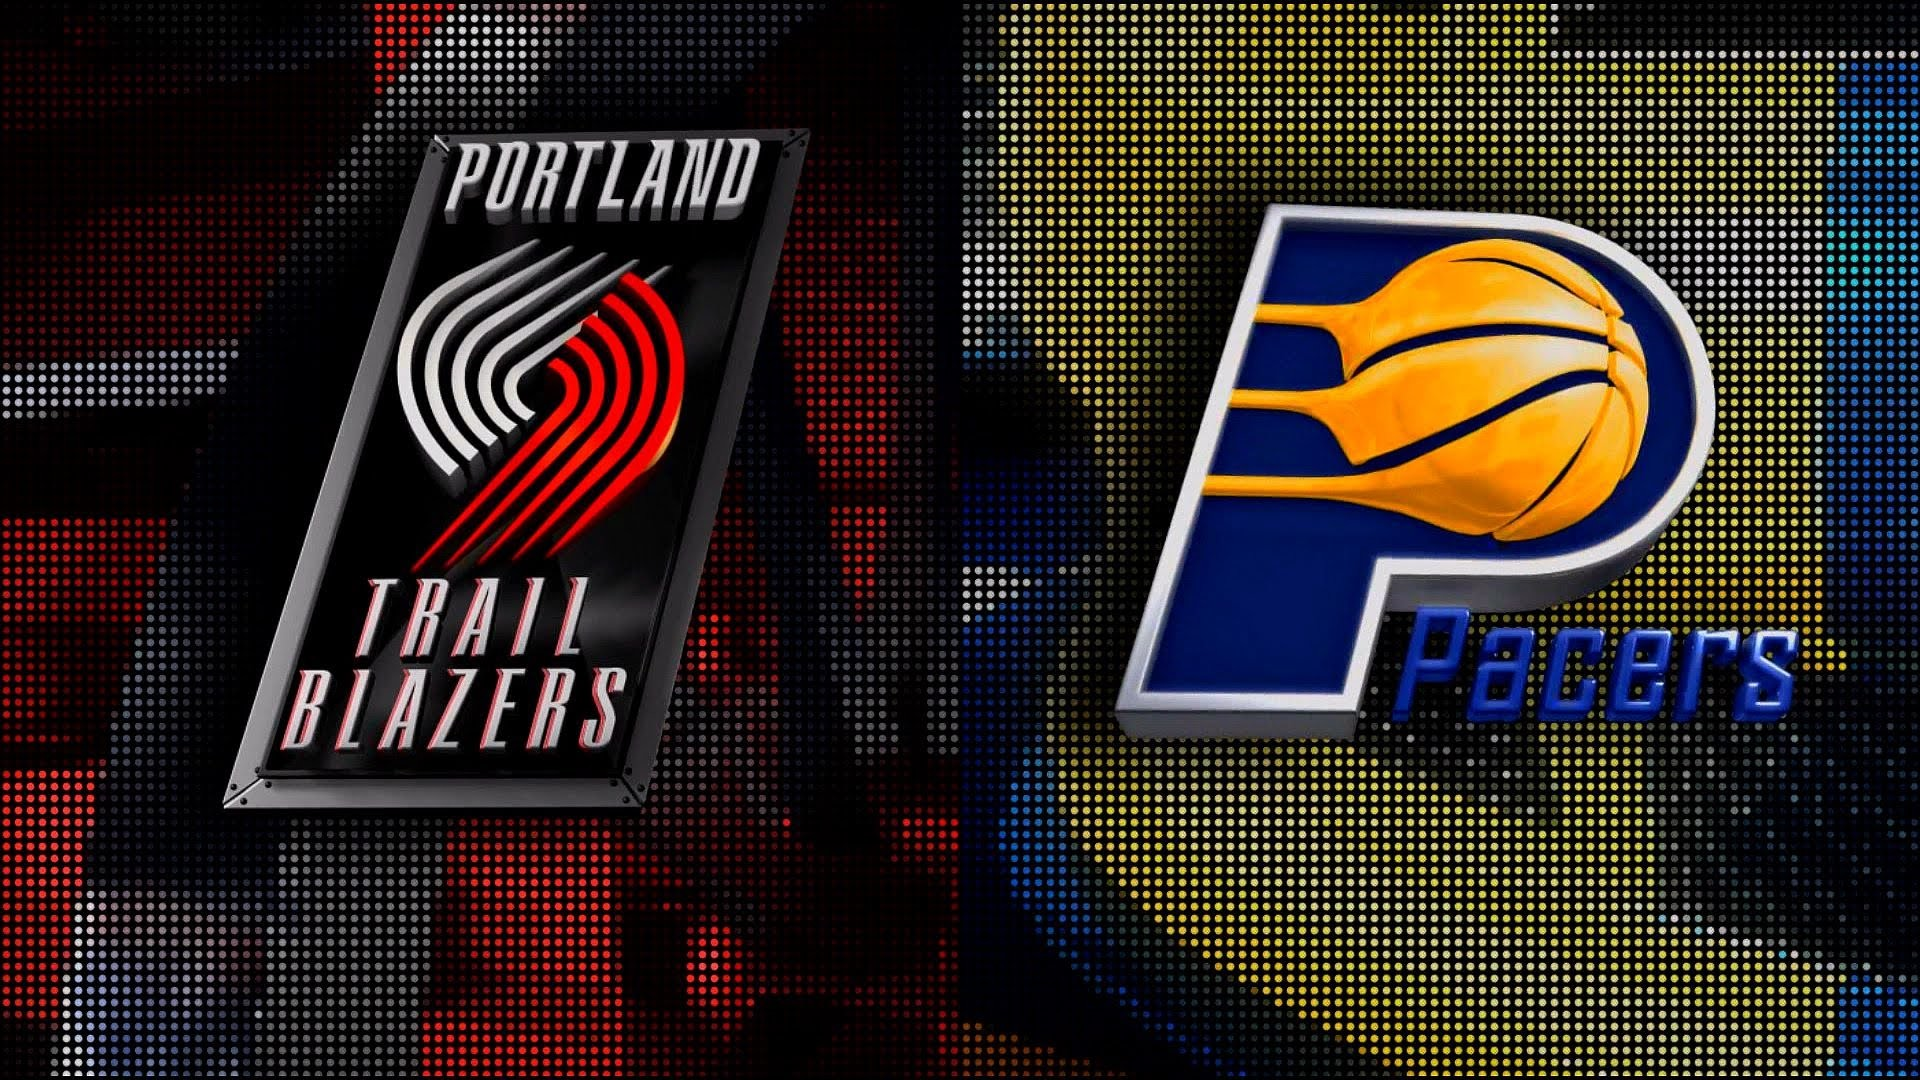 1920x1080 PS4: NBA 2K16 - Portland Trail Blazers vs. Indiana Pacers [1080p 60 FPS]